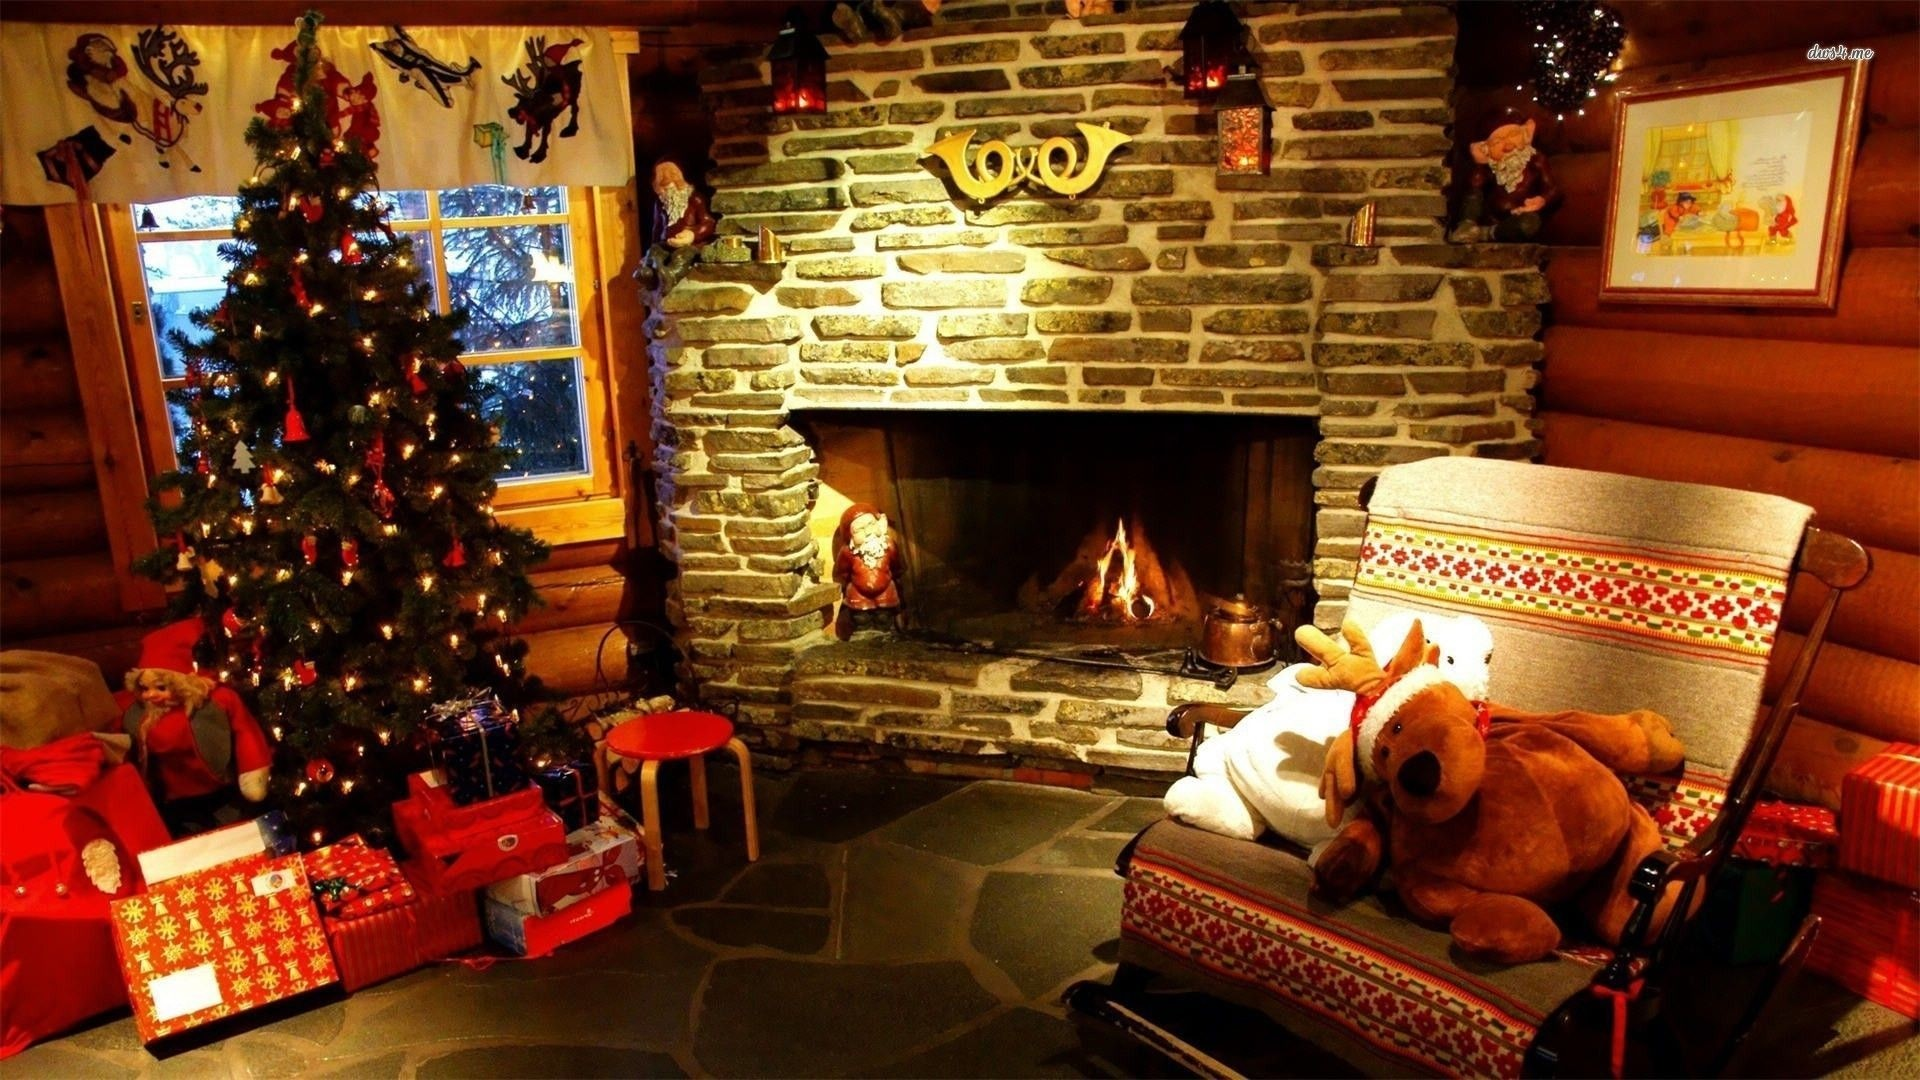 Res: 1920x1080, Christmas Fireplace Wallpaper Animated Free - Free Christmas Fireplace  Wallpapers Wallpaper Cave Android Pinterest